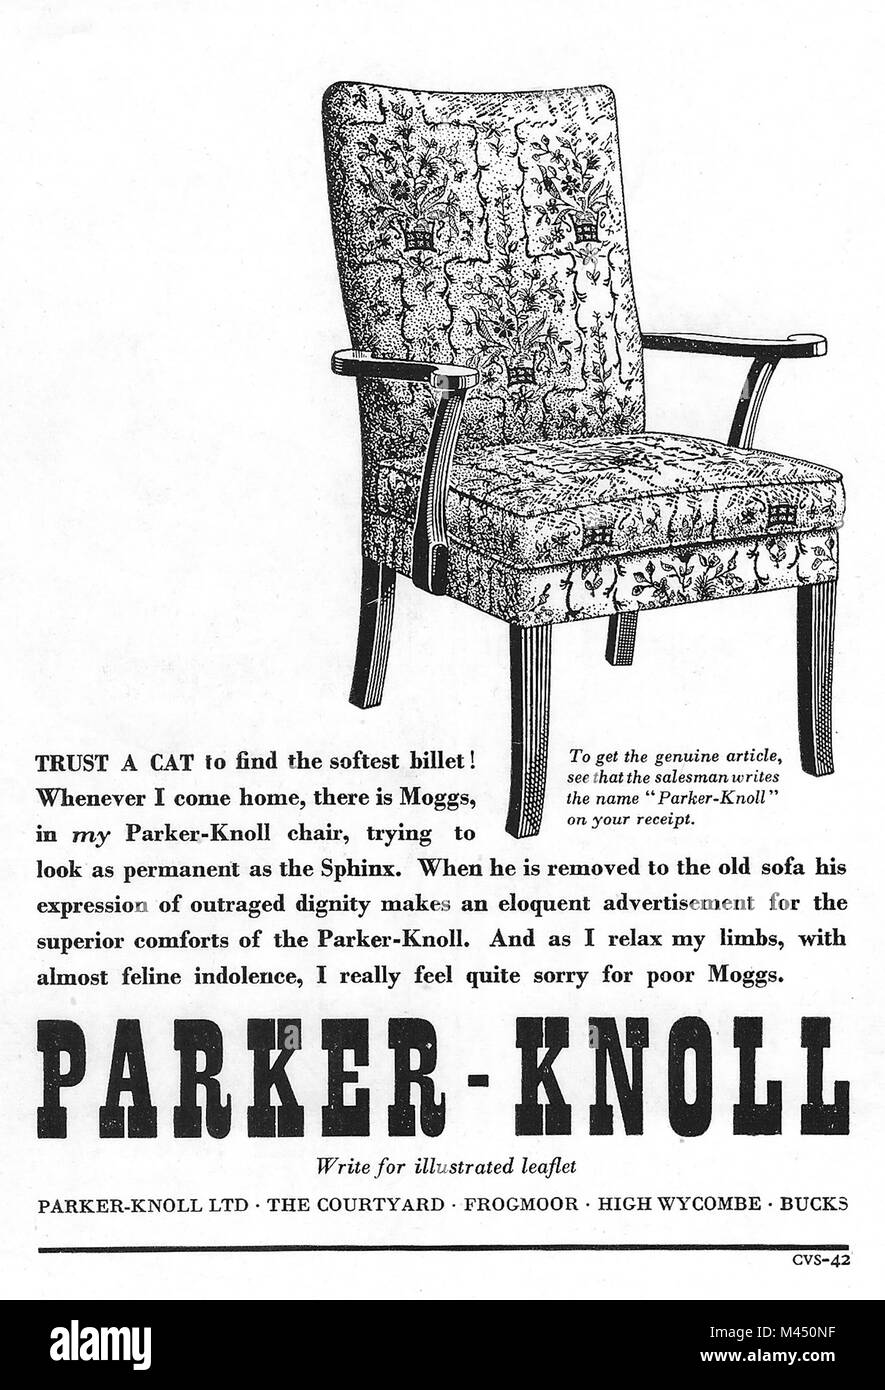 Parker - Knoll chair furniture advert, advertising in Country Life magazine UK 1951 - Stock Image